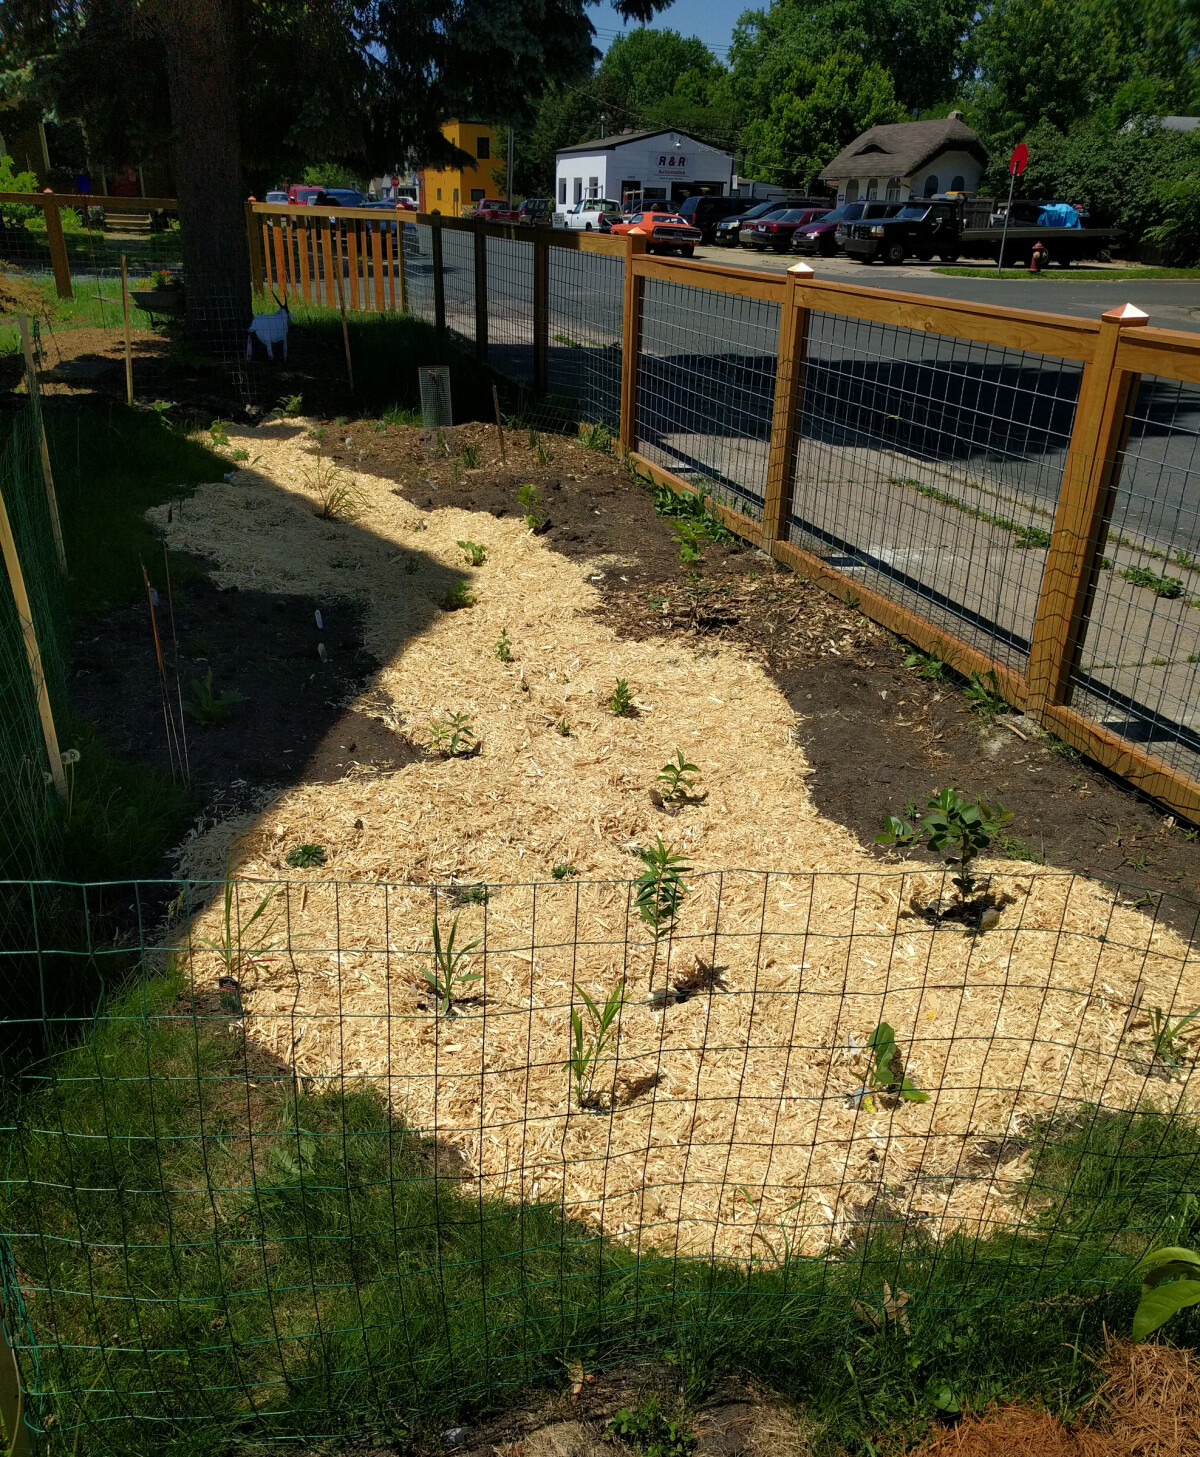 Rain garden with new plants and mulch